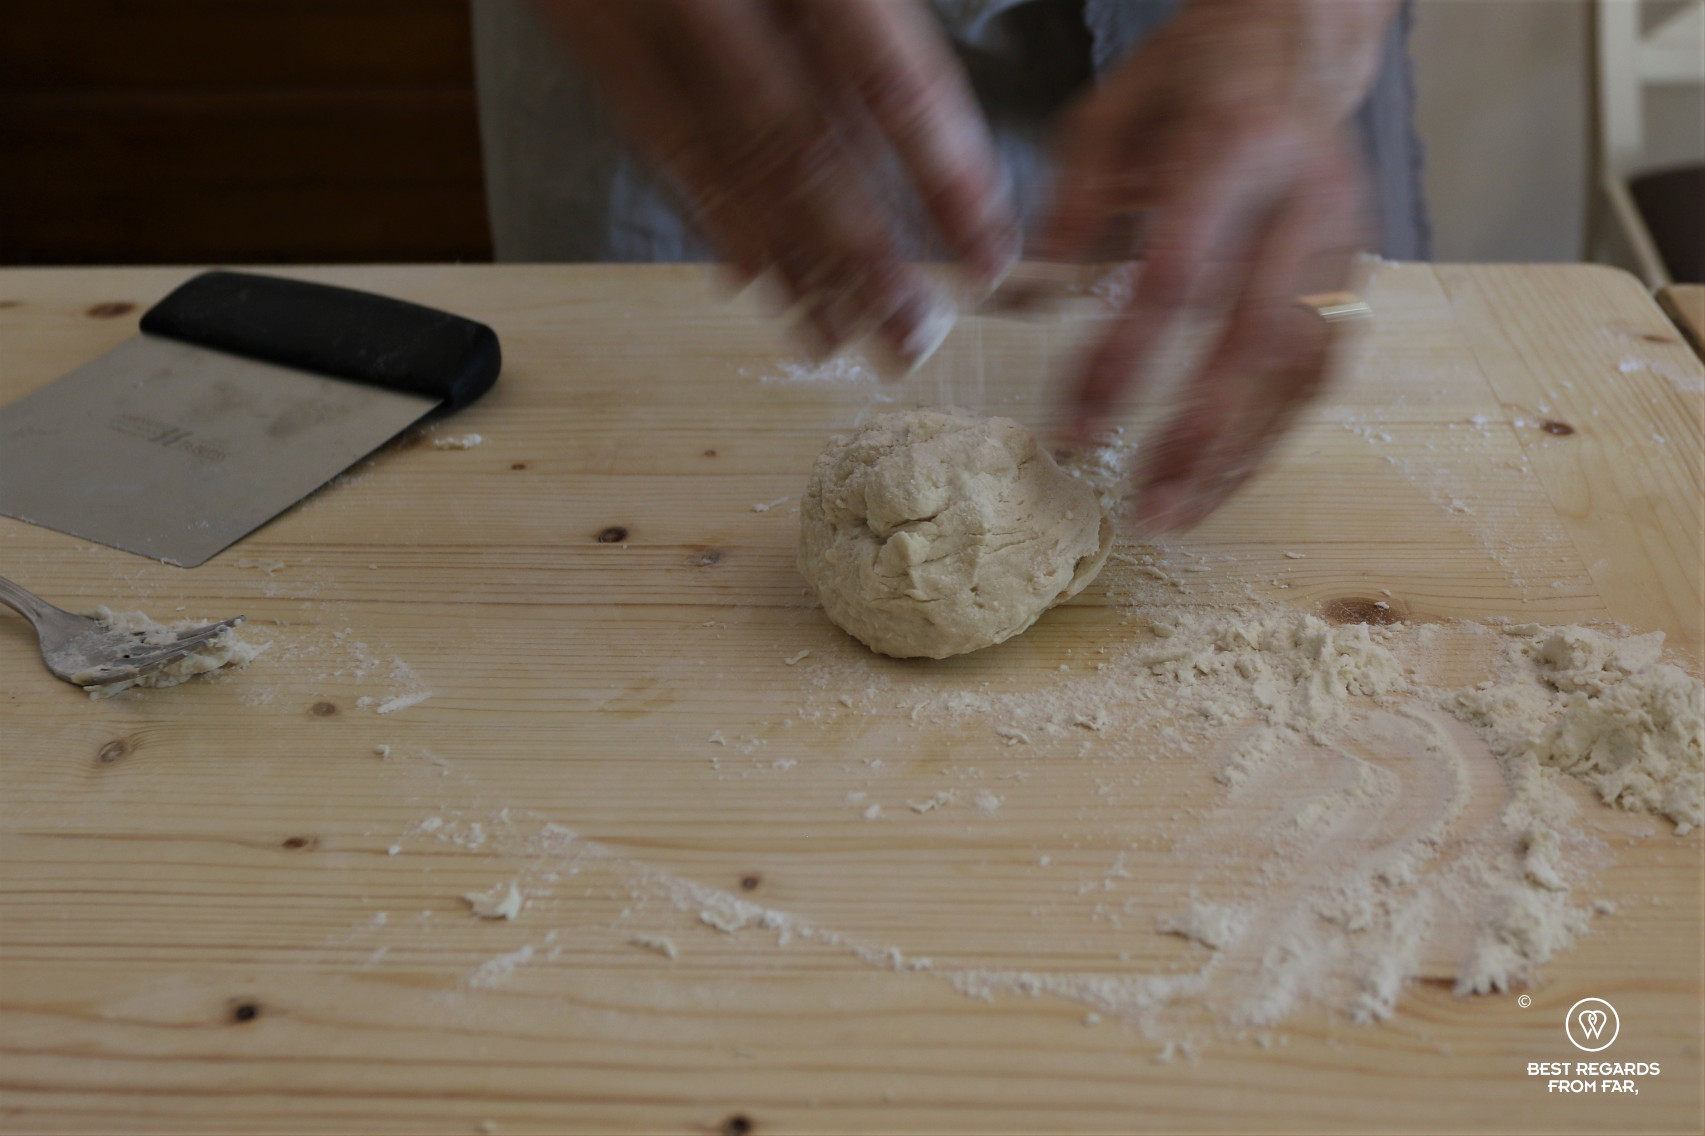 Kneading the dough on a wooden board to make pastas